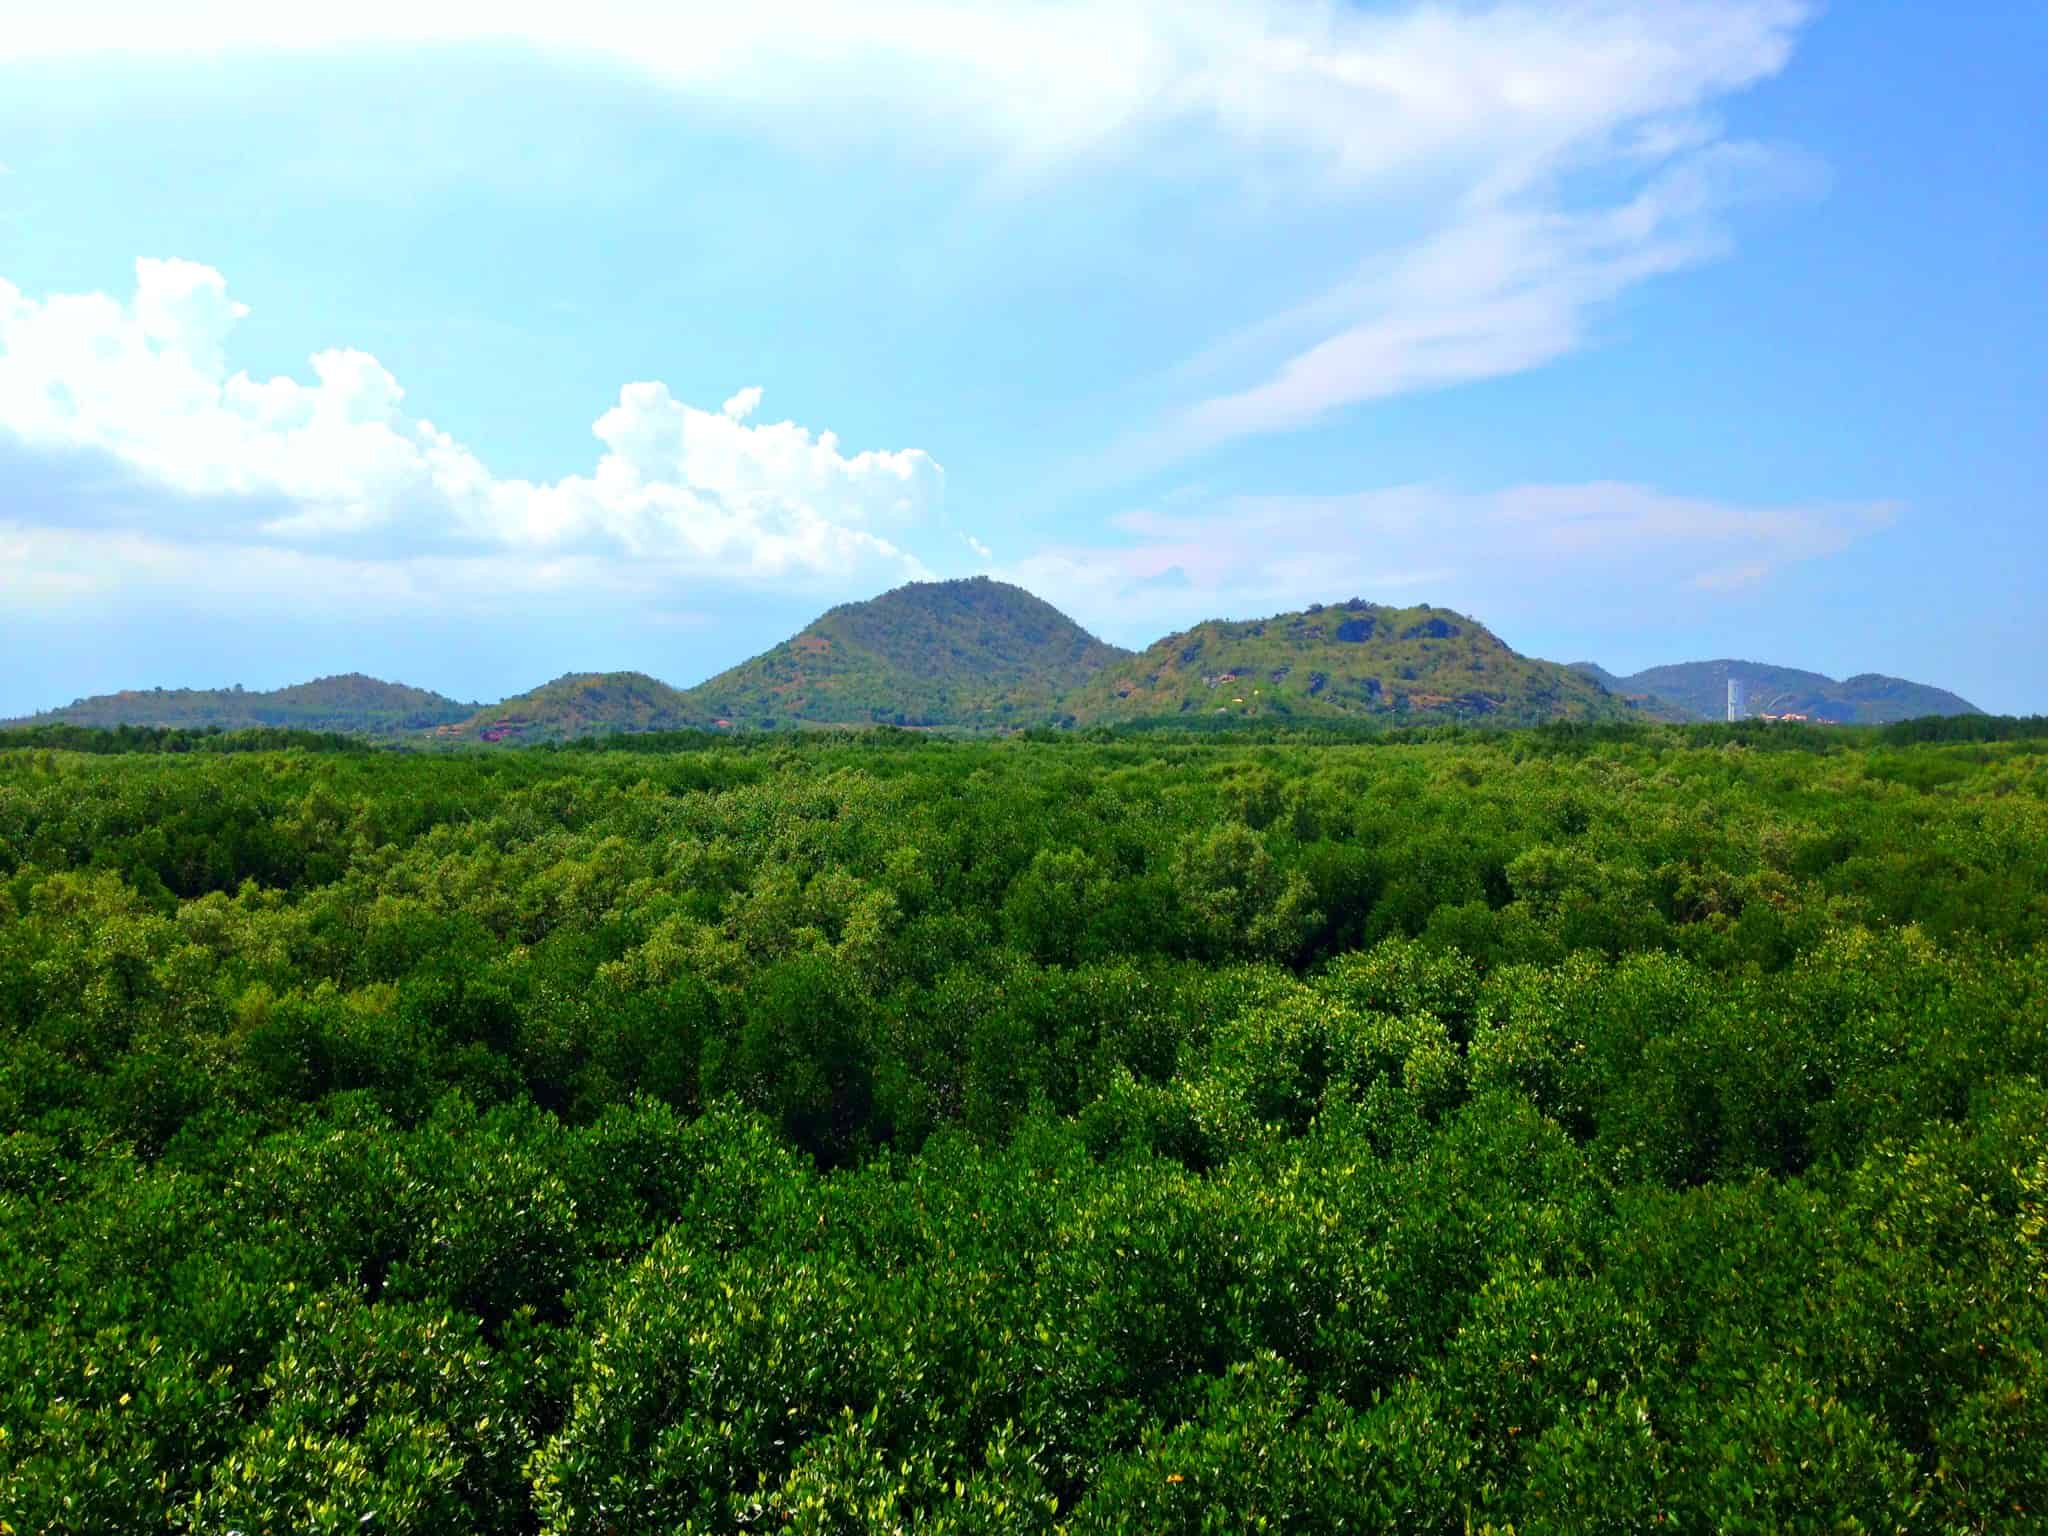 Our view across Pranburi Mangrove Forest | My Travel Monkey